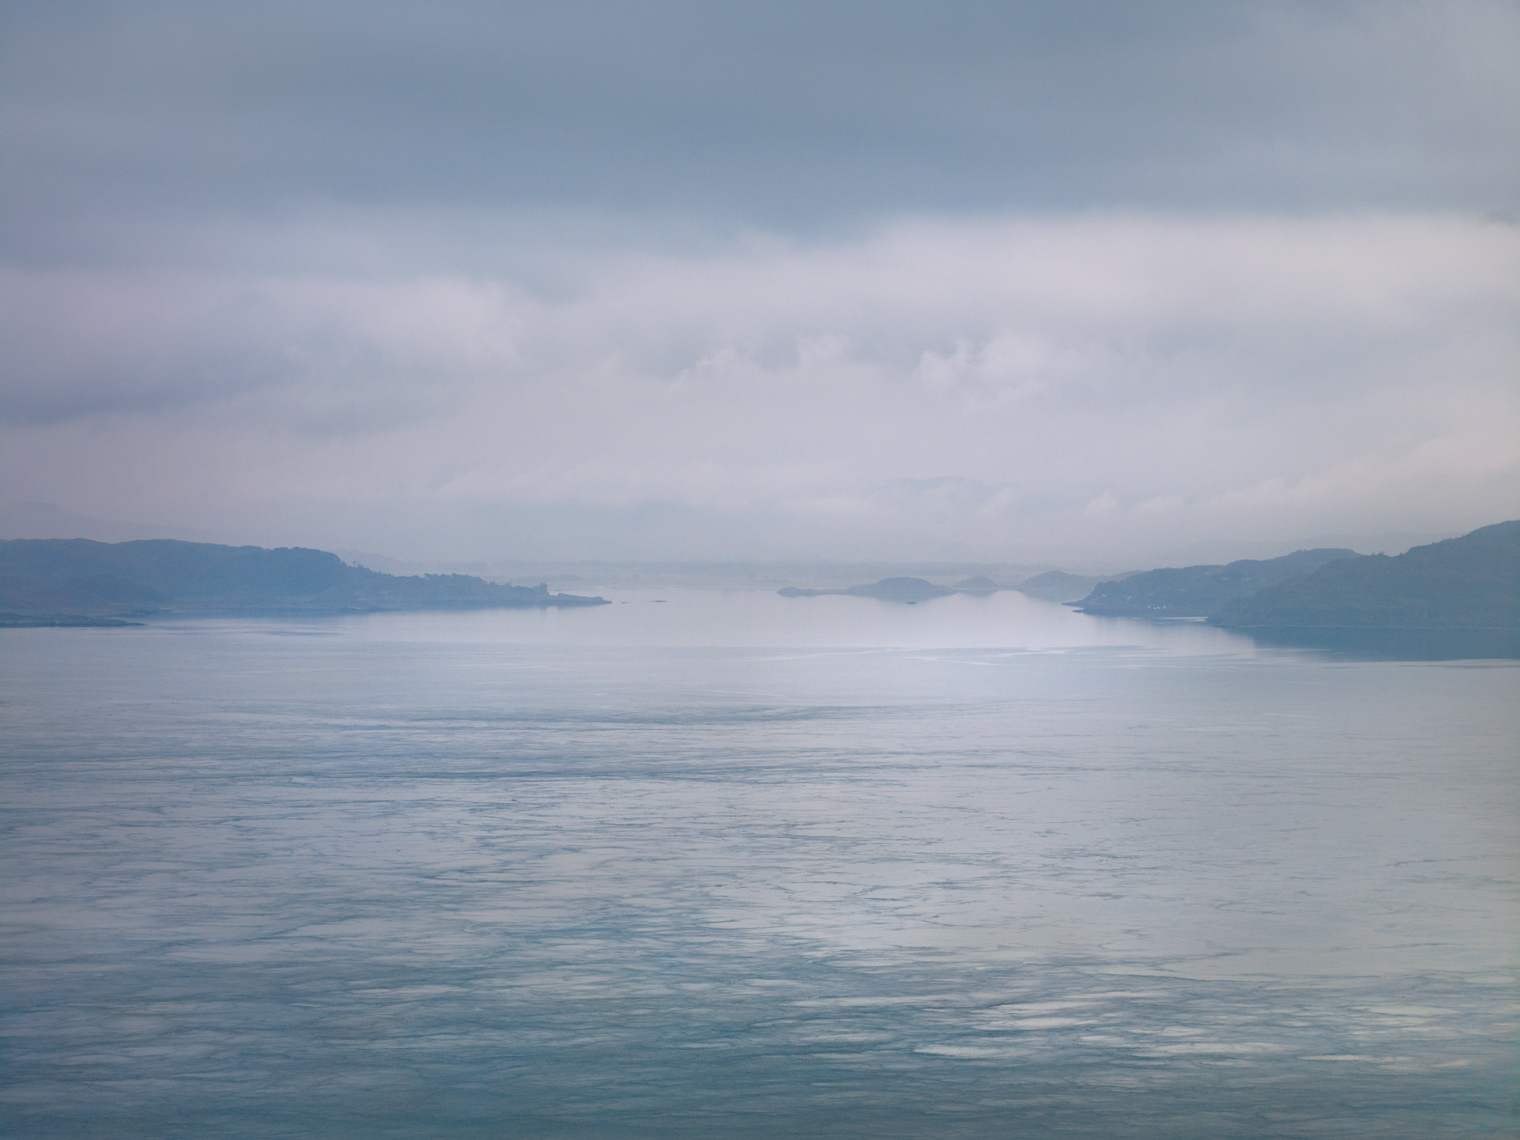 Jon Wyatt Photography - Sound of Jura VI - seascape of the Sound of Jura looking towards the Scottish mainland